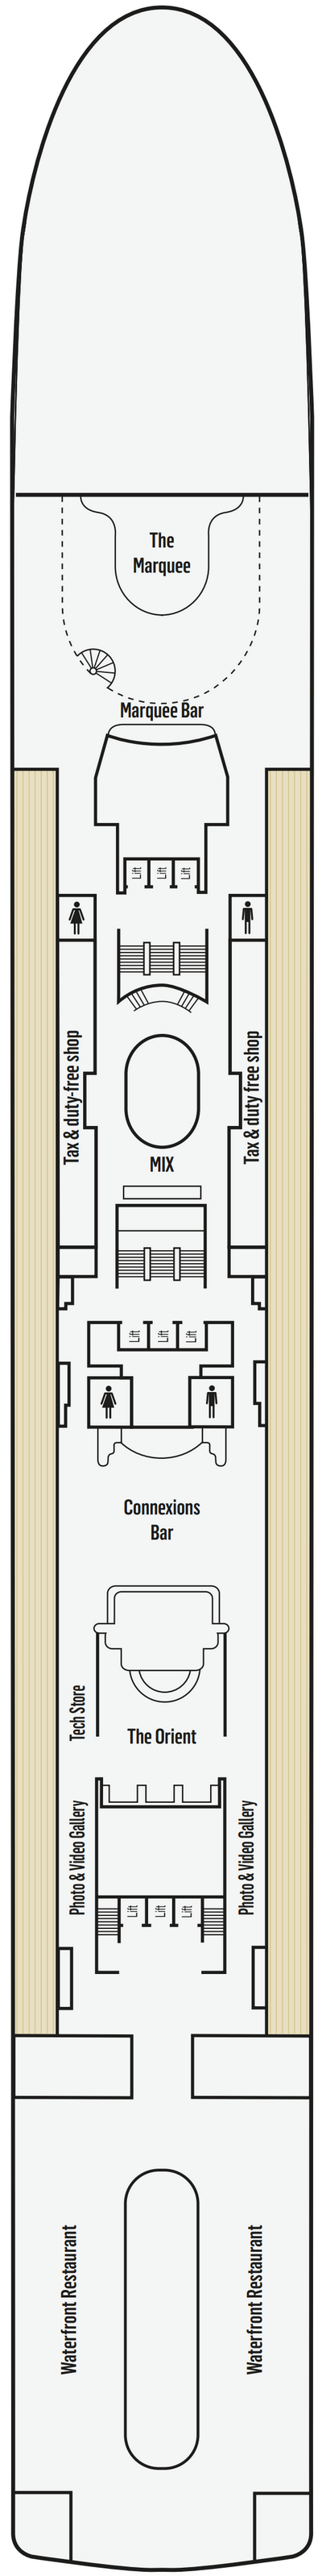 P&O - Pacific Jewel Deck 7 layout